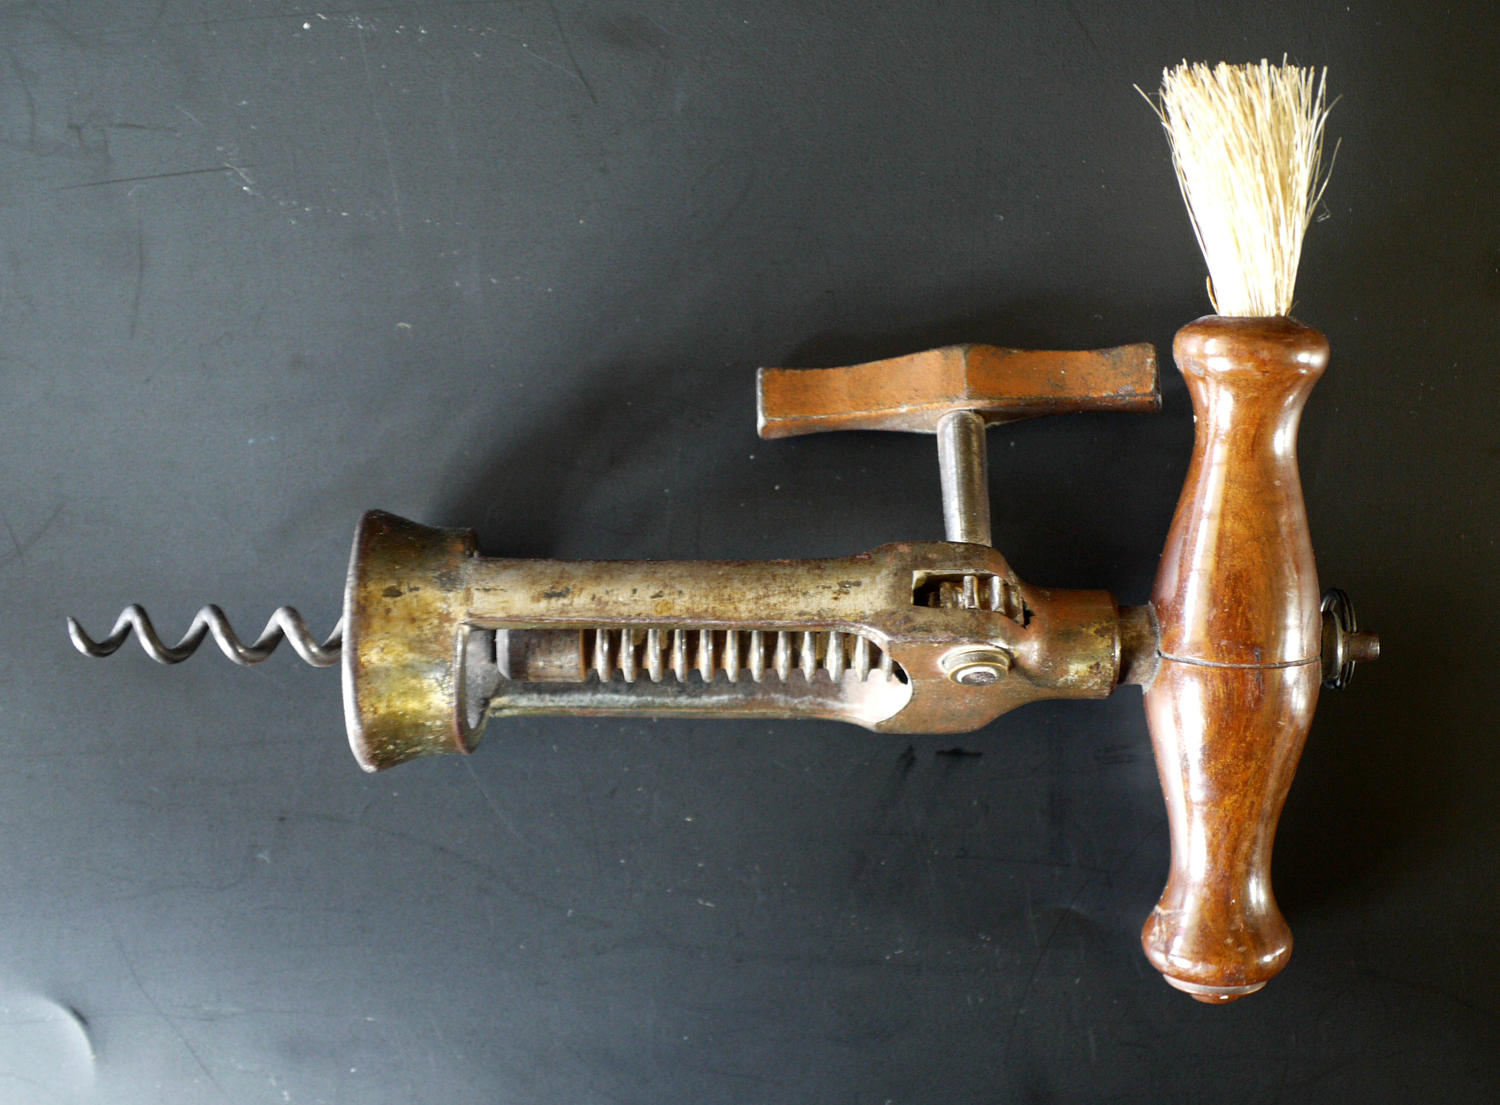 A 'London Rack' corkscrew